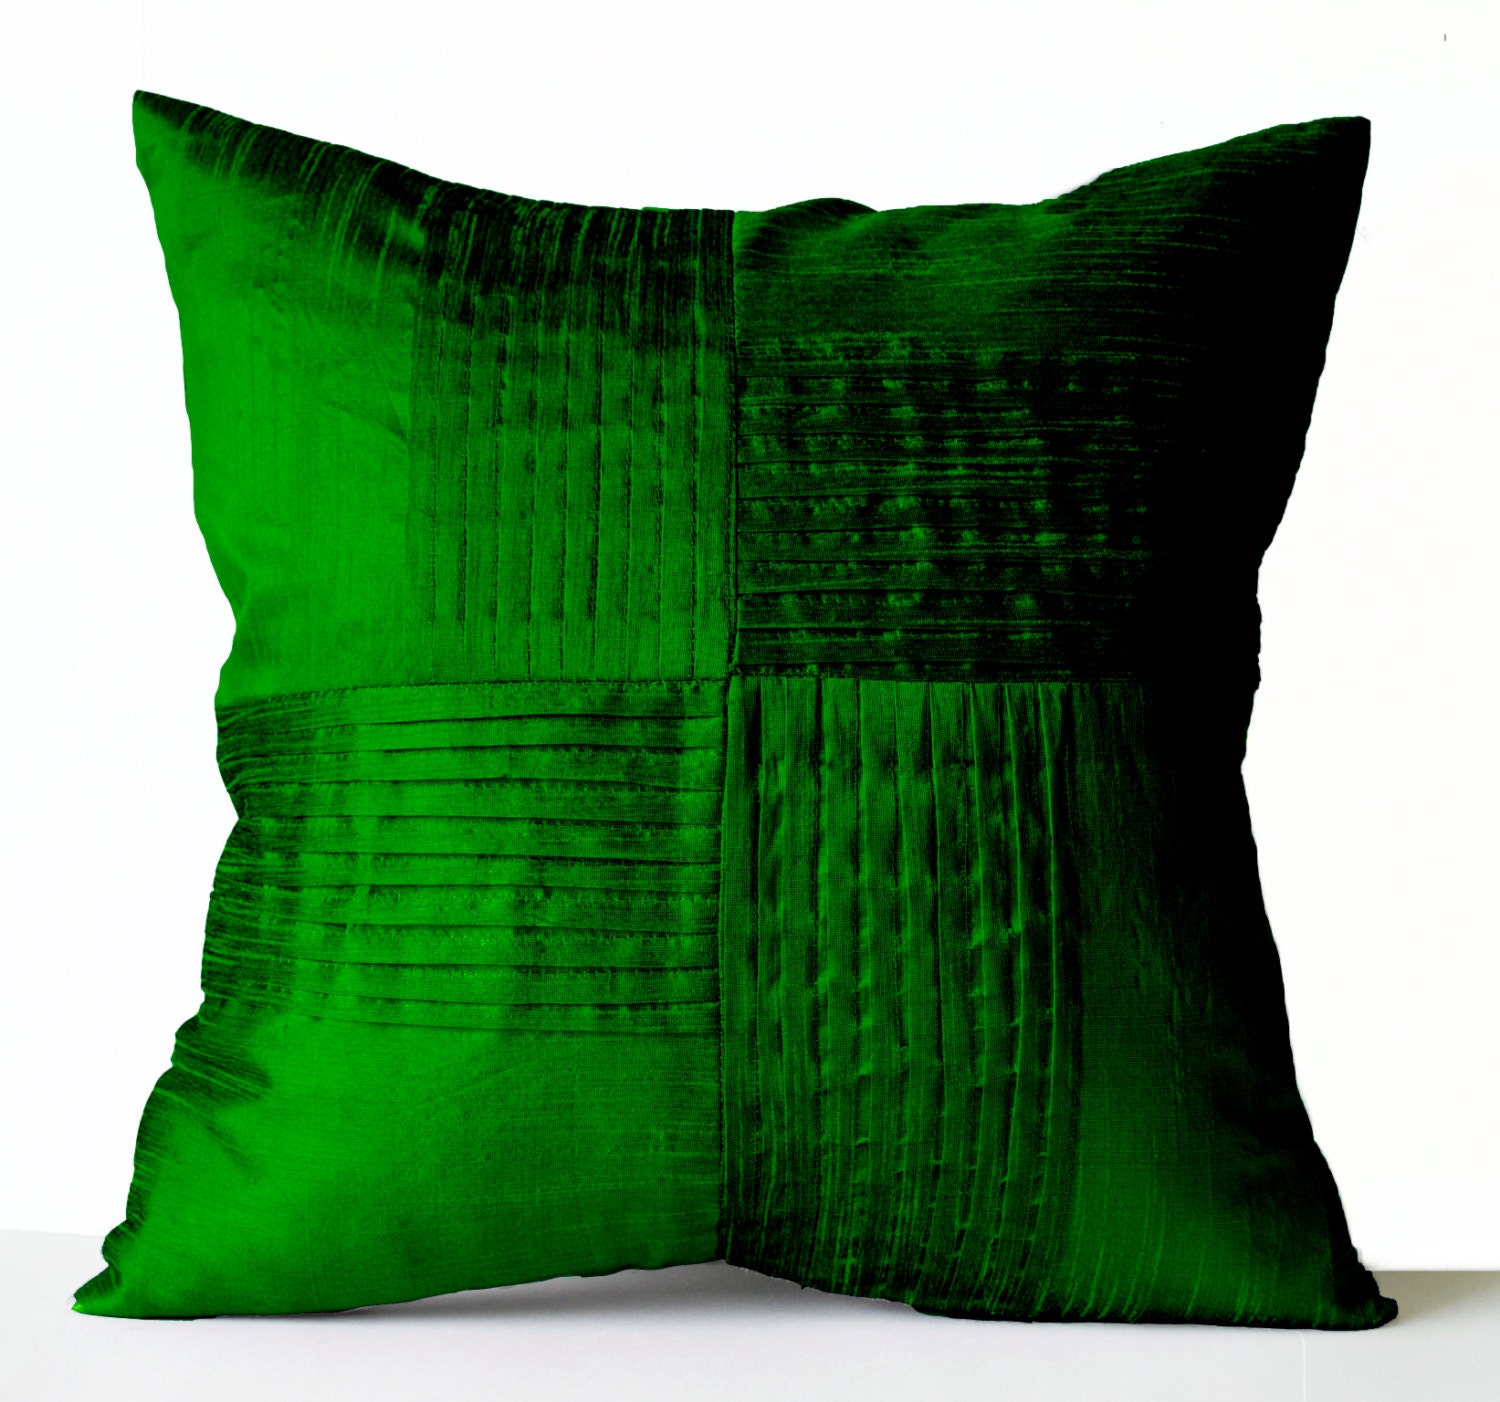 Throw Pillow Cover Emerald Green Silk Decorative Pillow Case